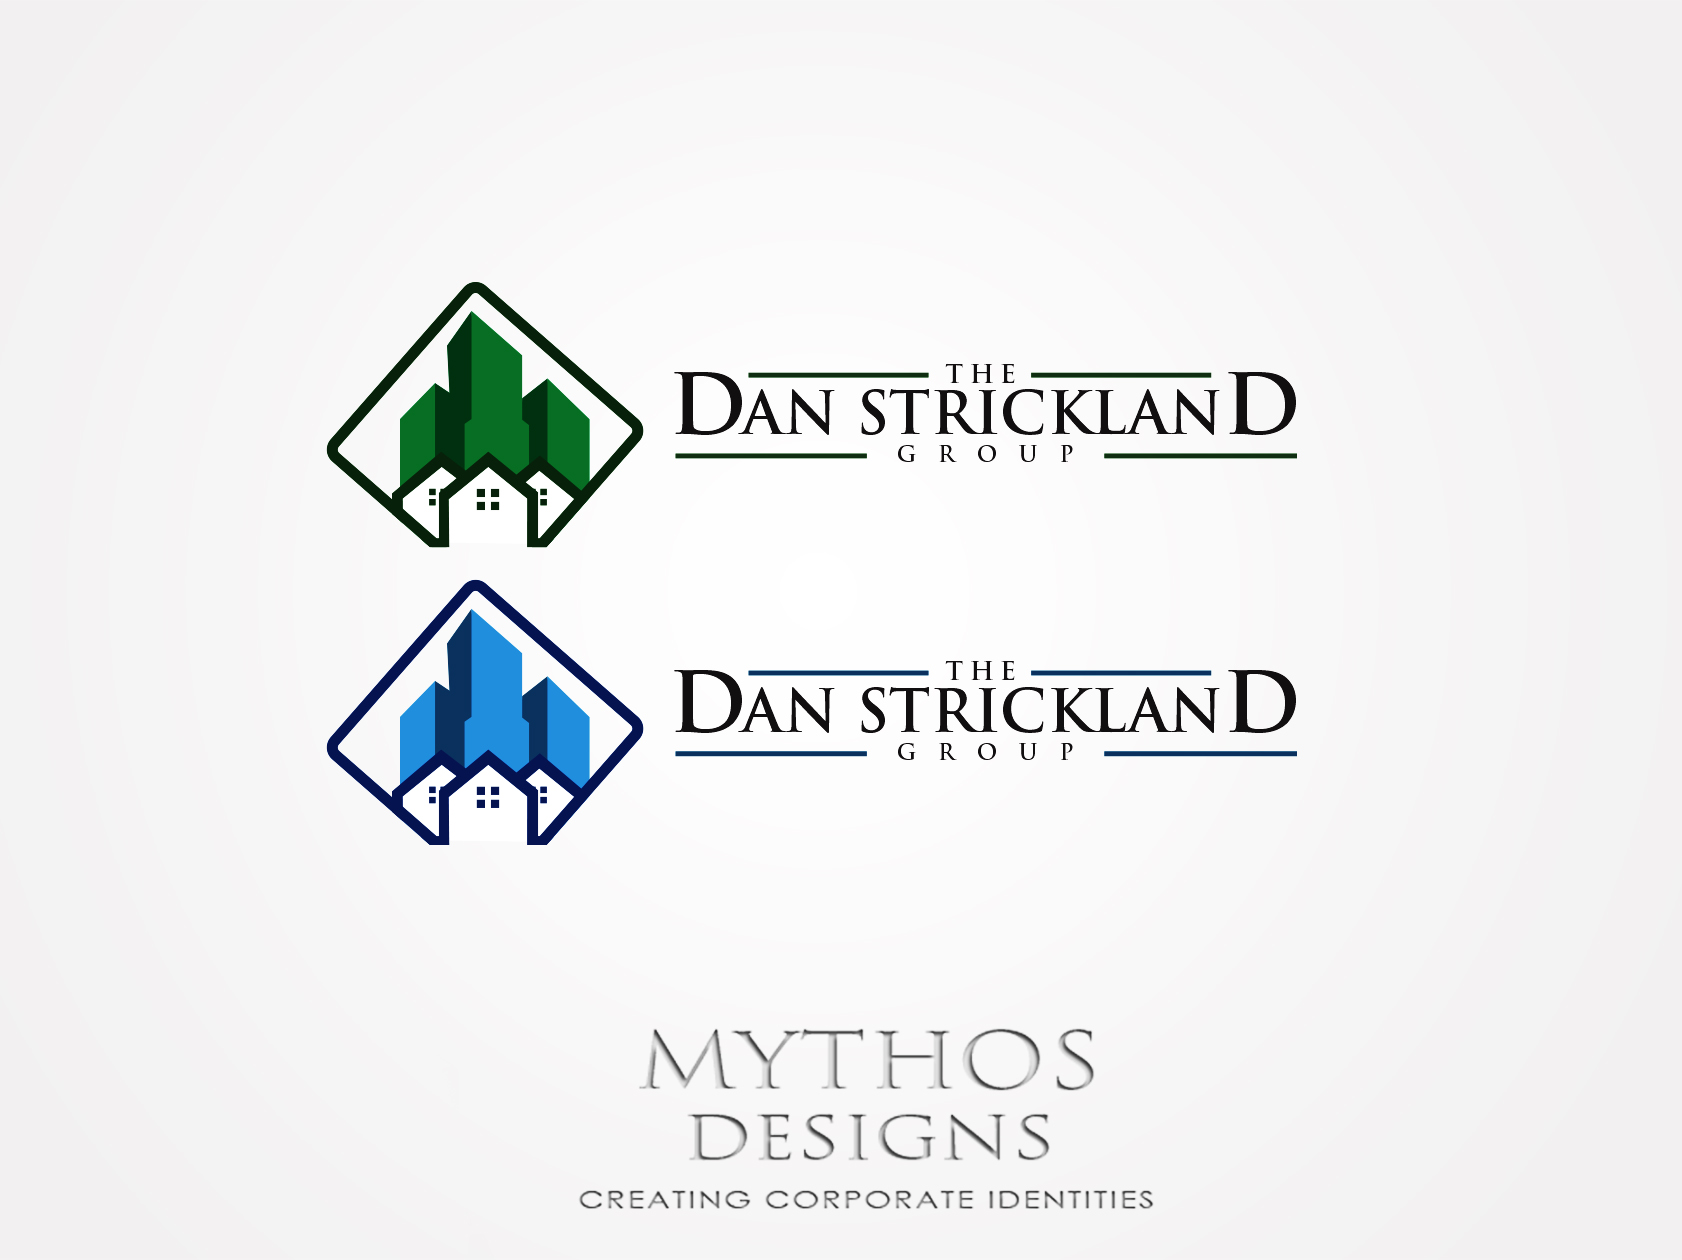 Logo Design by Mythos Designs - Entry No. 283 in the Logo Design Contest Creative Logo Design for The Dan Strickland Group.